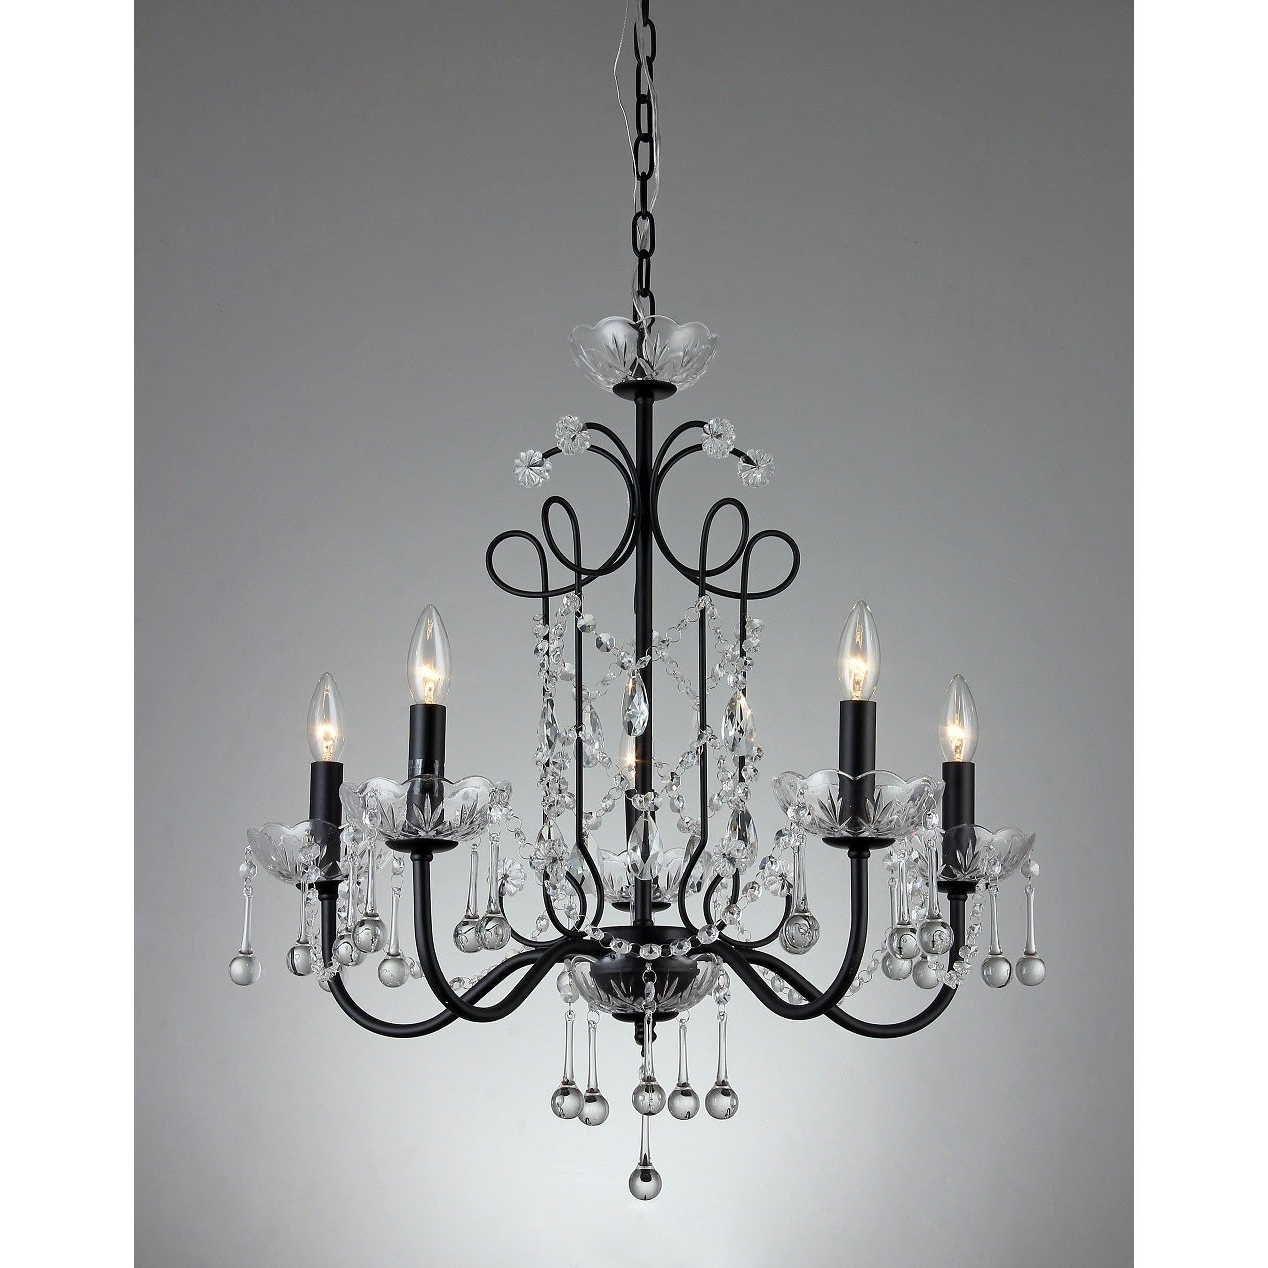 2019 Donna 5-Light Crystal 22-Inch Black Finish Chandelier with Donna 4-Light Globe Chandeliers